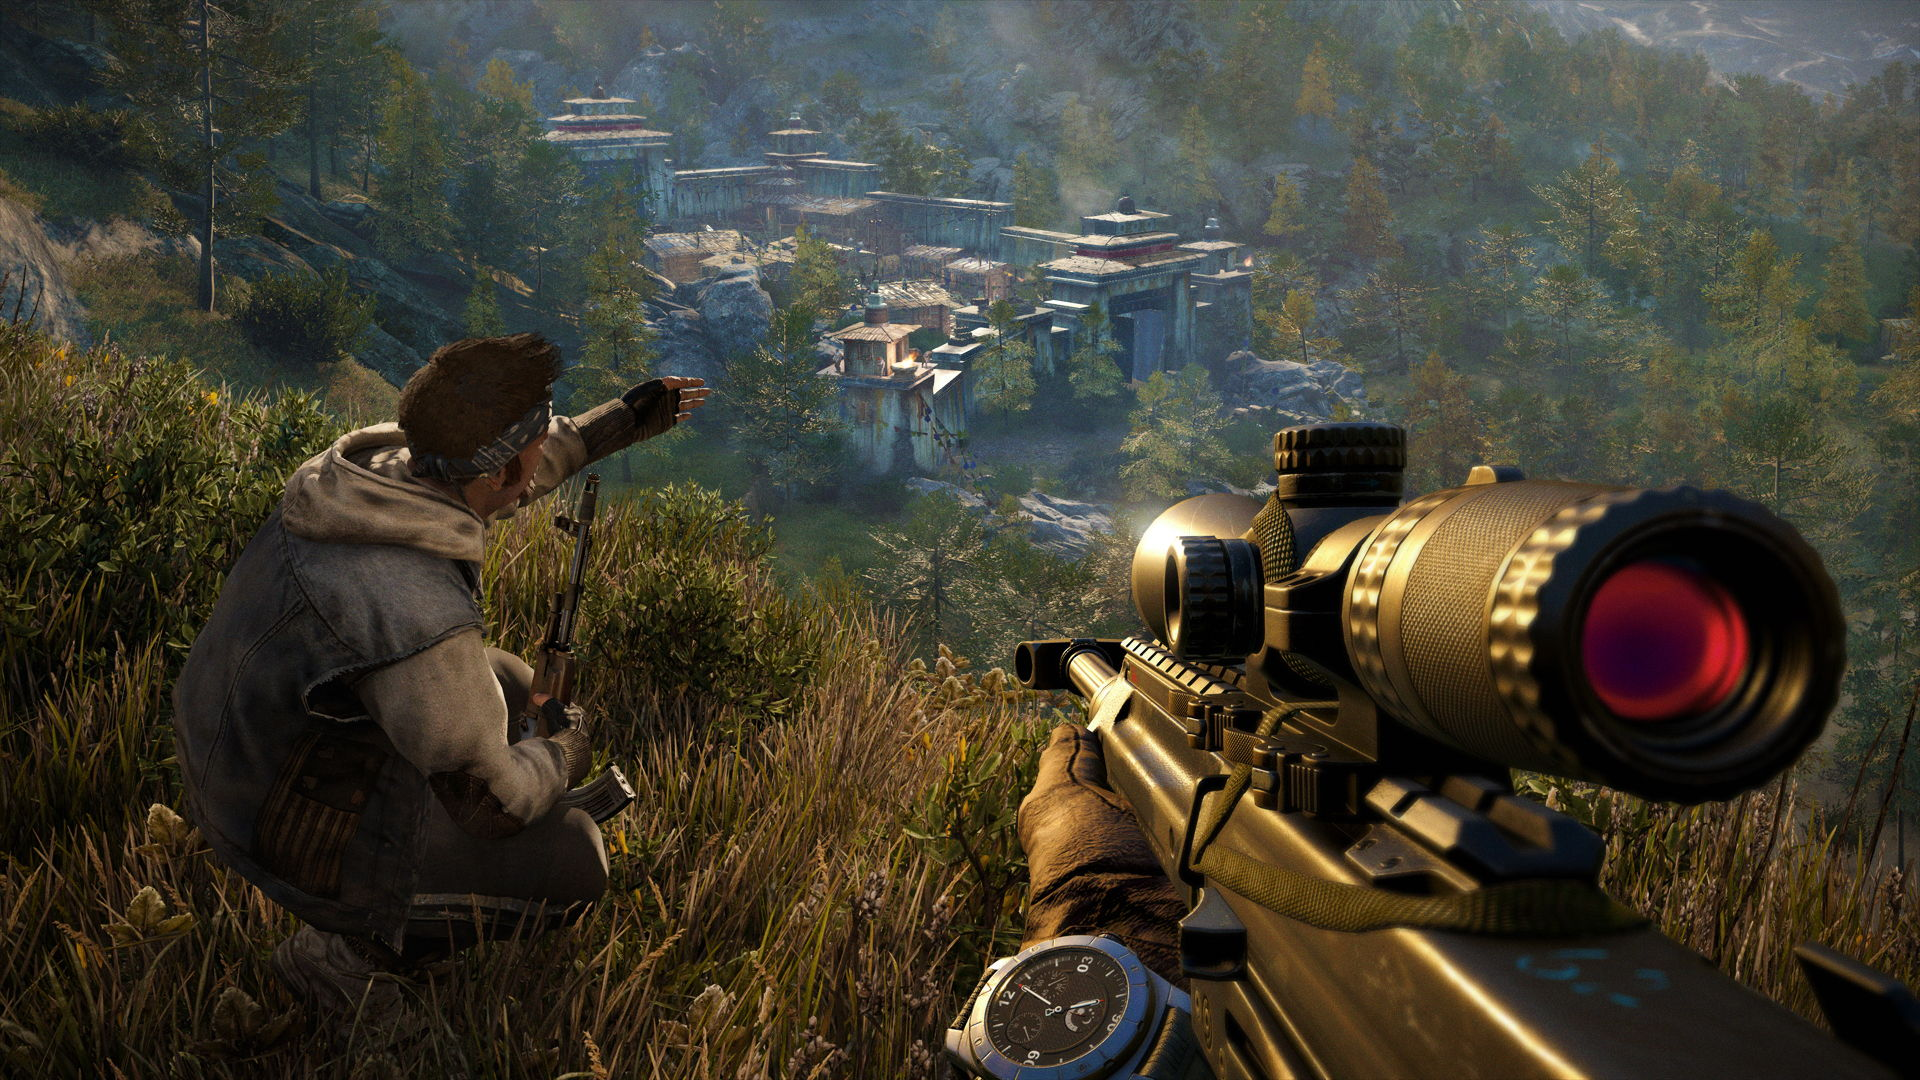 high definition wallpaper for desktop background download far cry 4 912